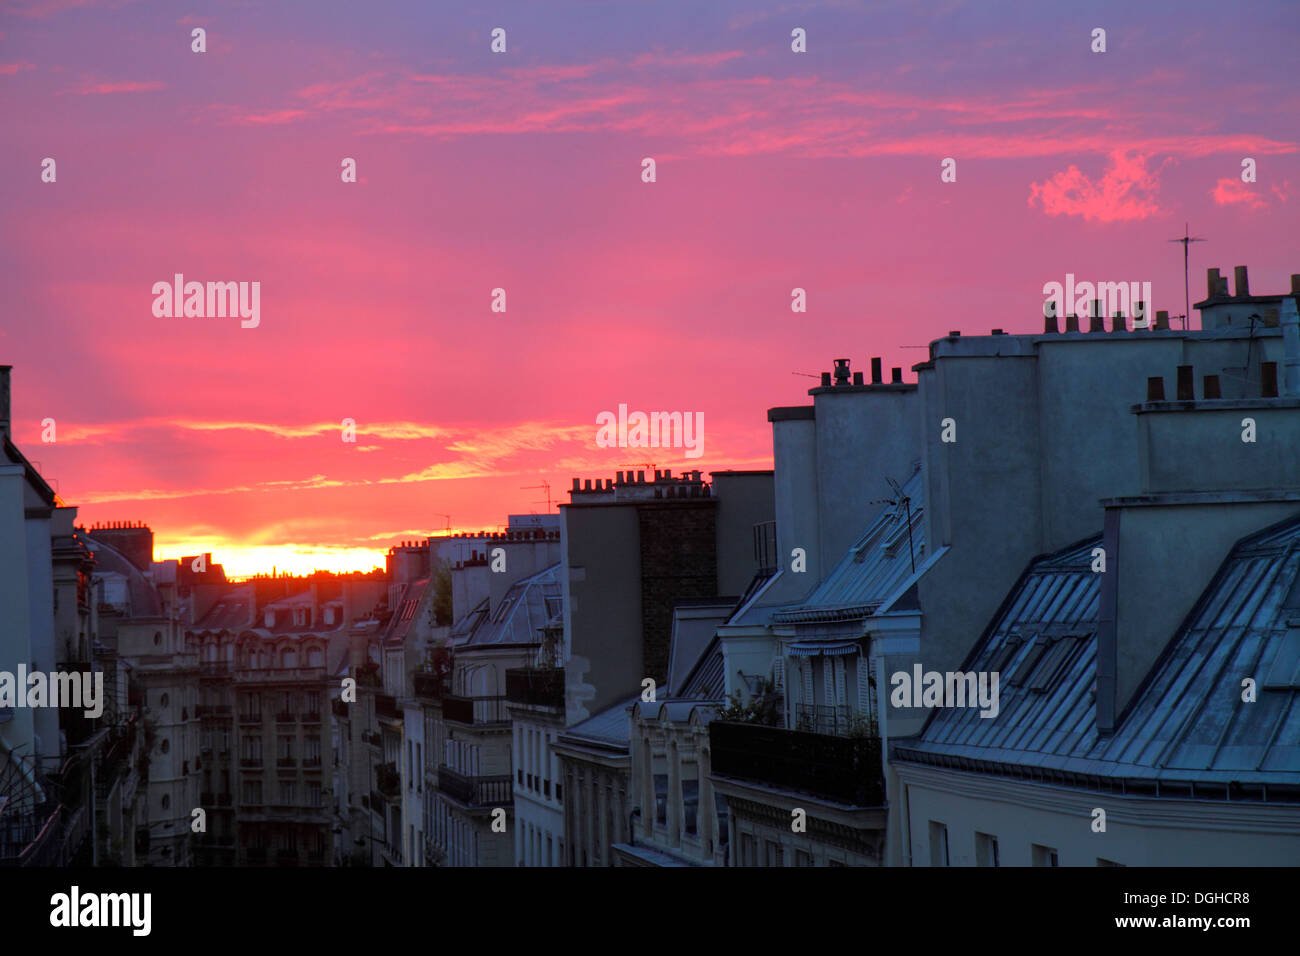 Paris France Europe French 9th arrondissement Rue la Bruyere aerial sunset Haussmann apartment buildings rooftops chimneys - Stock Image